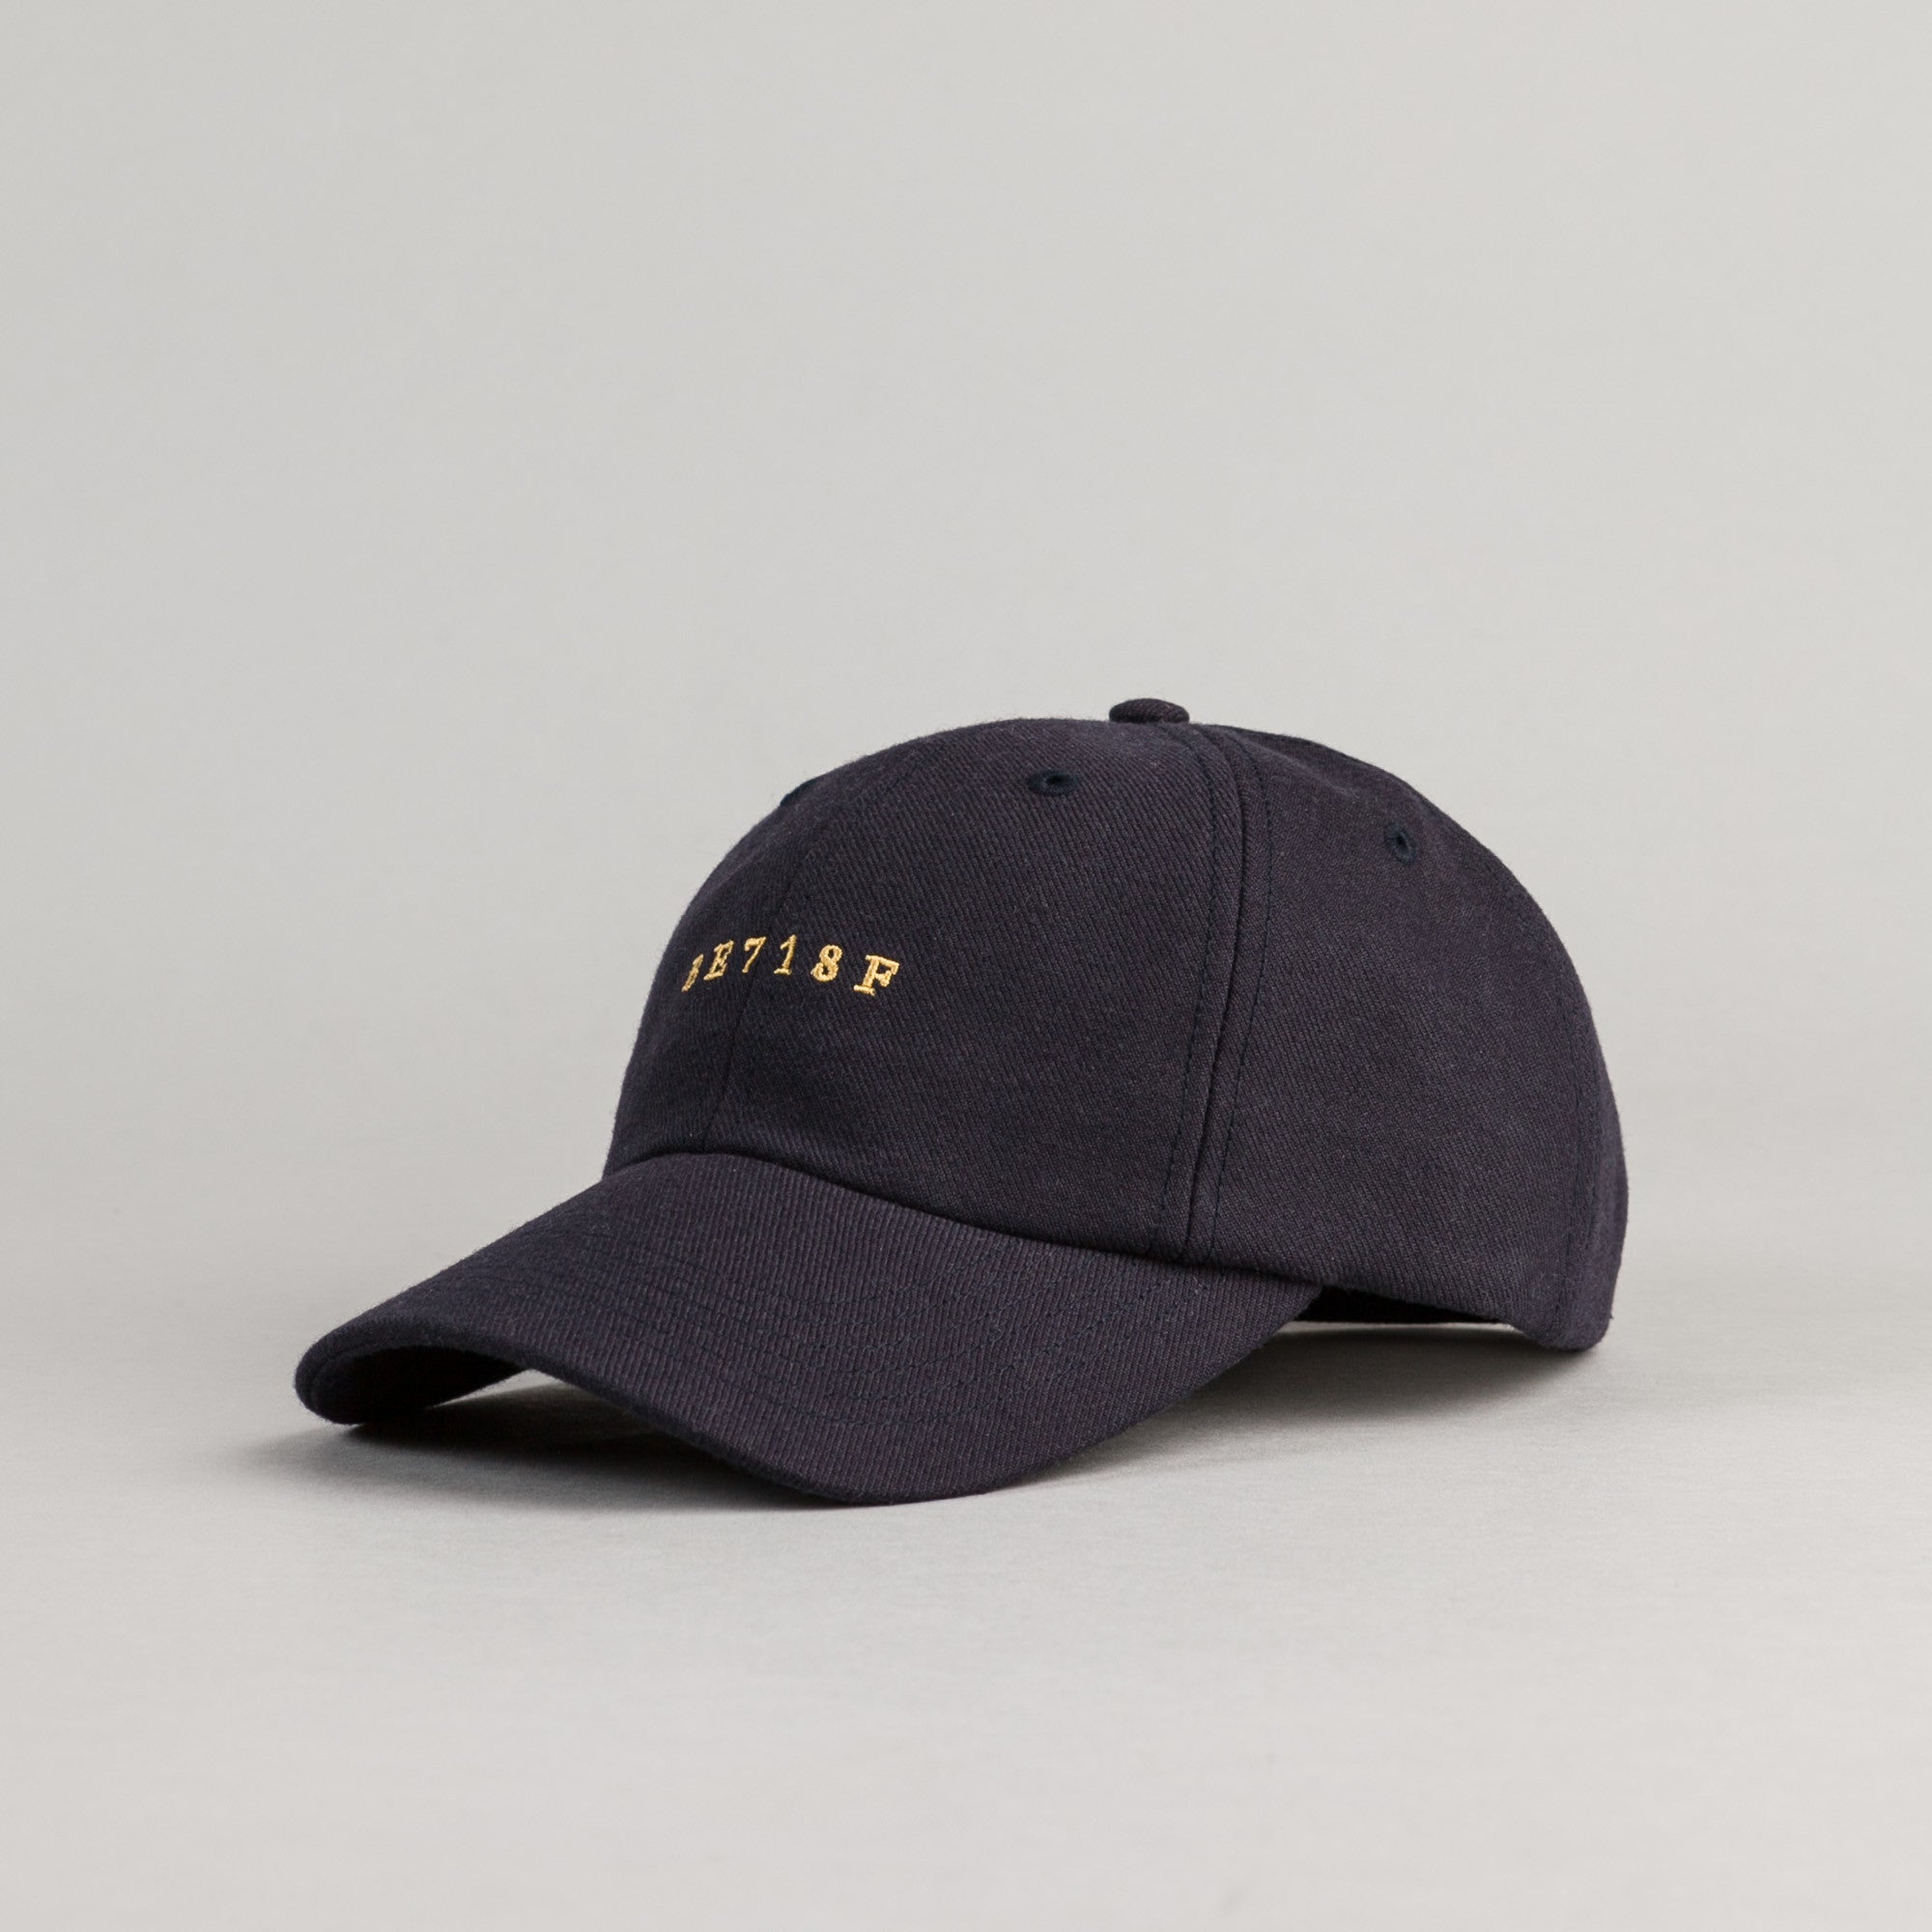 Belief 718 Baseball Cap - Navy